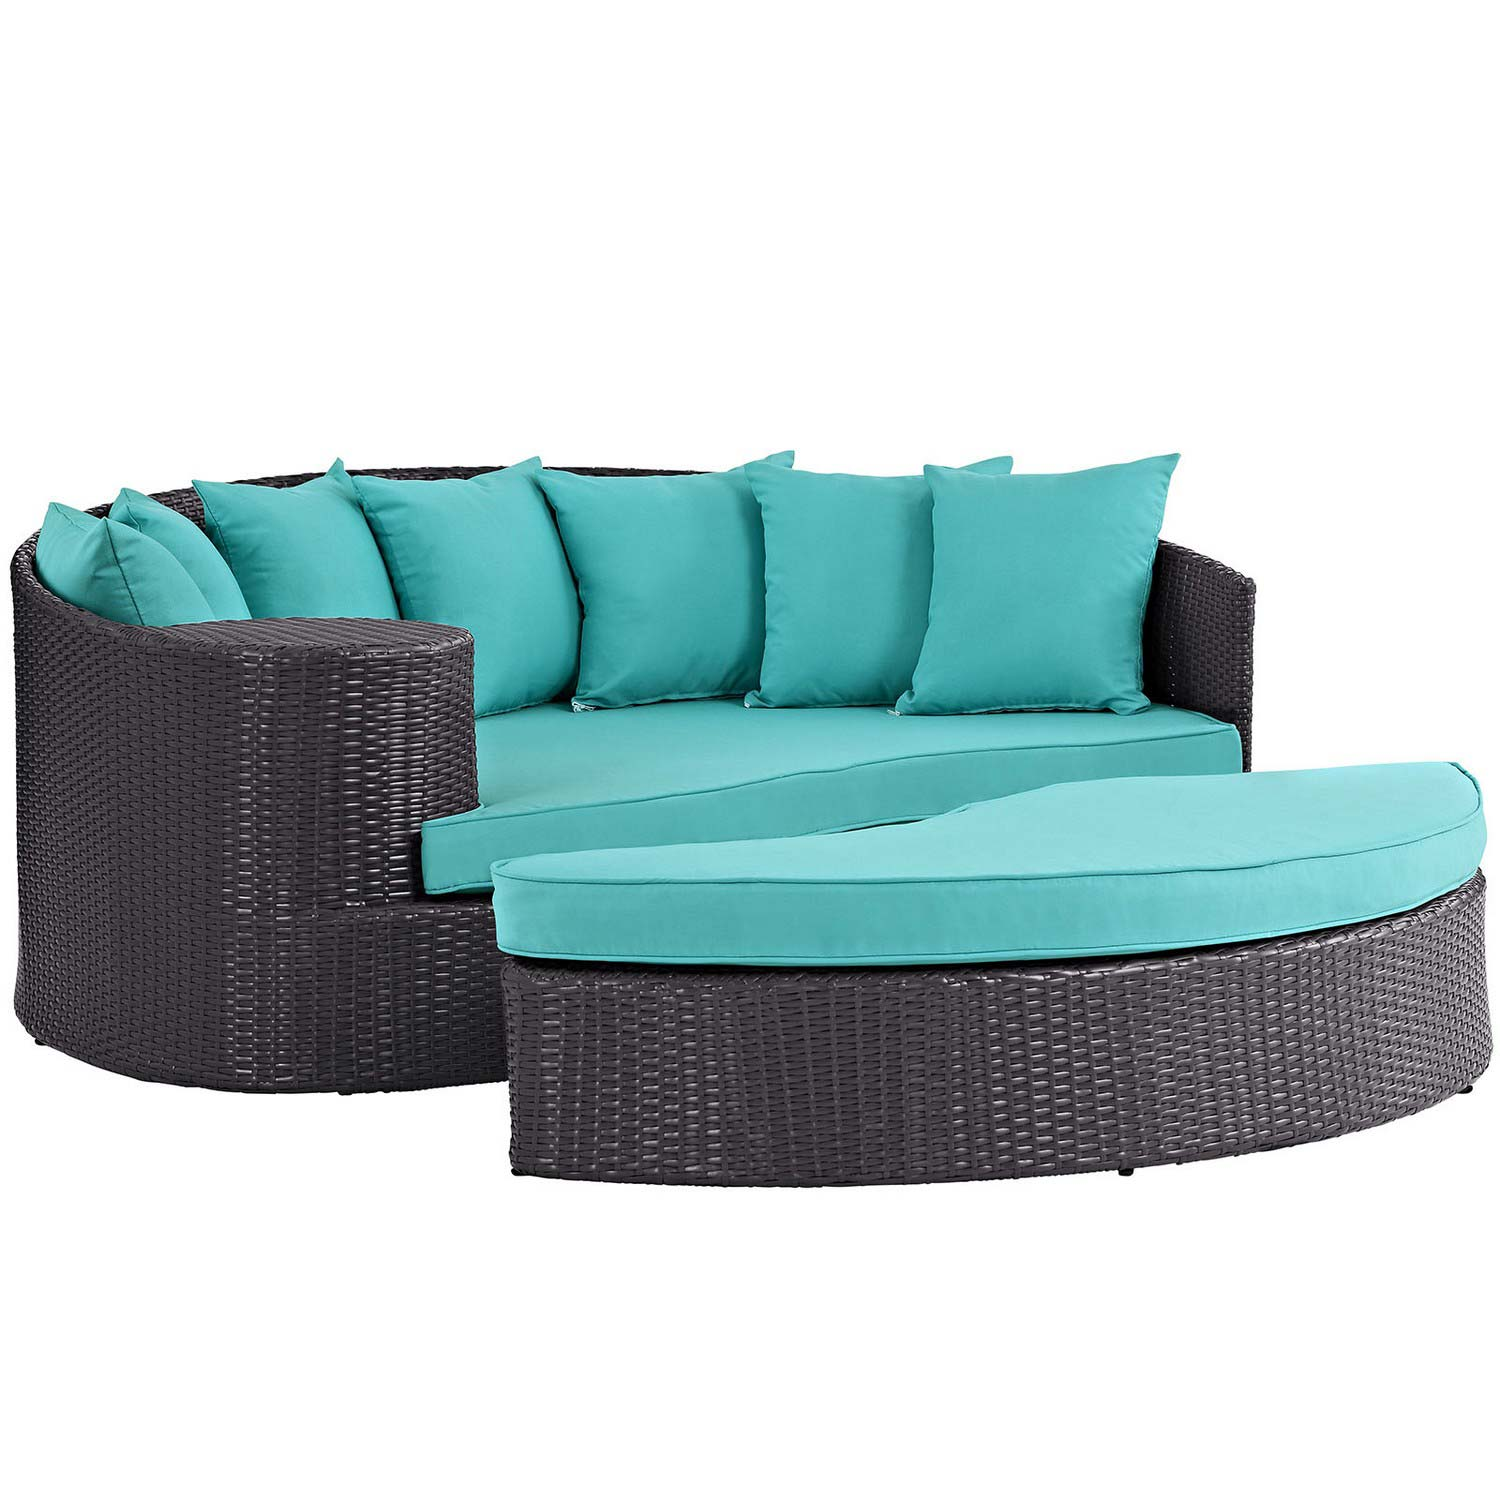 Modway Taiji Outdoor Patio Daybed - Espresso/Turquoise